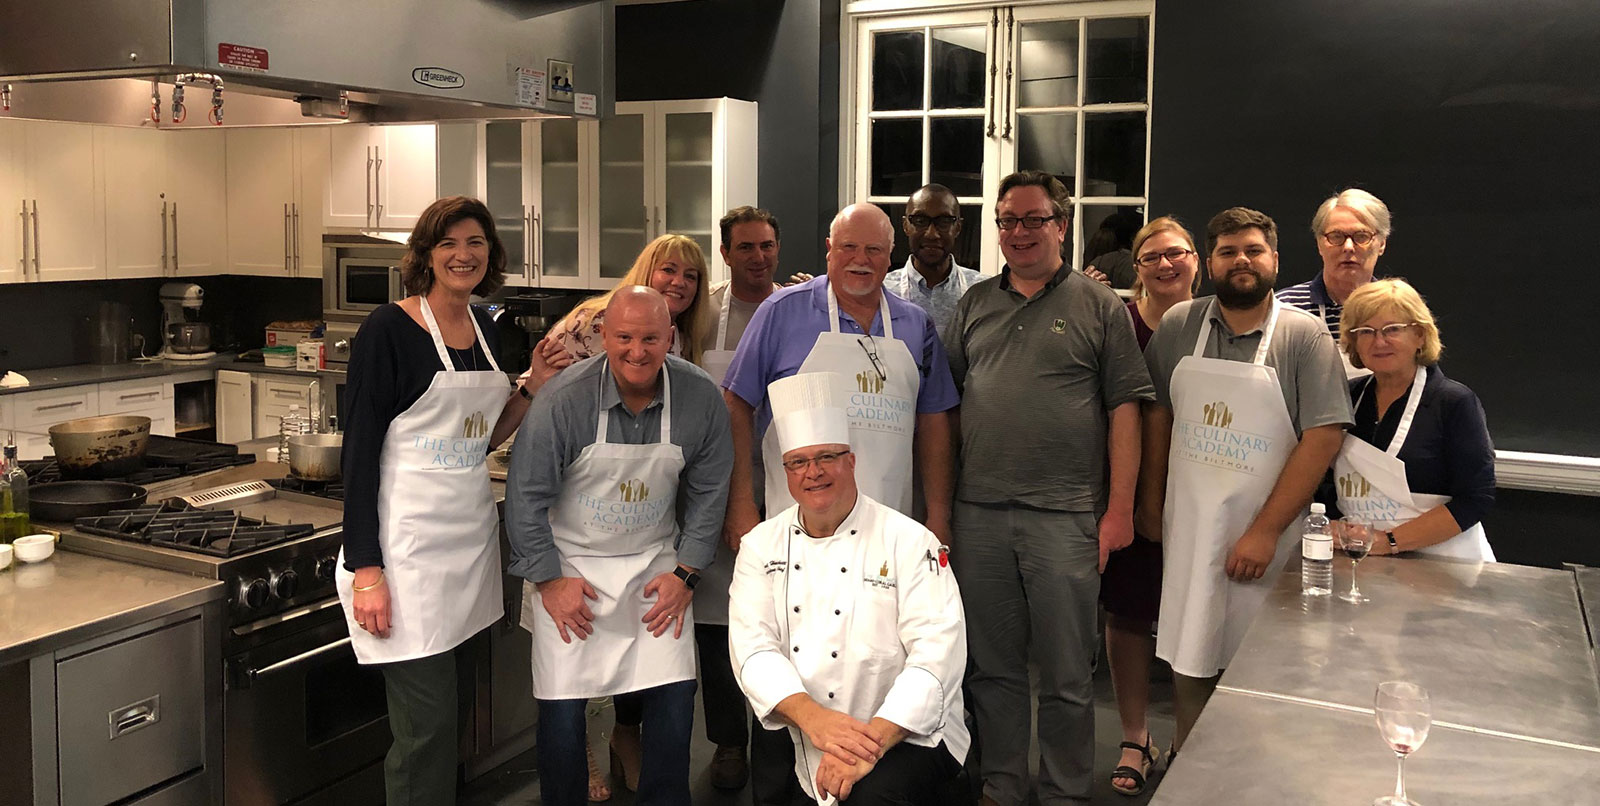 Team building cooking classes